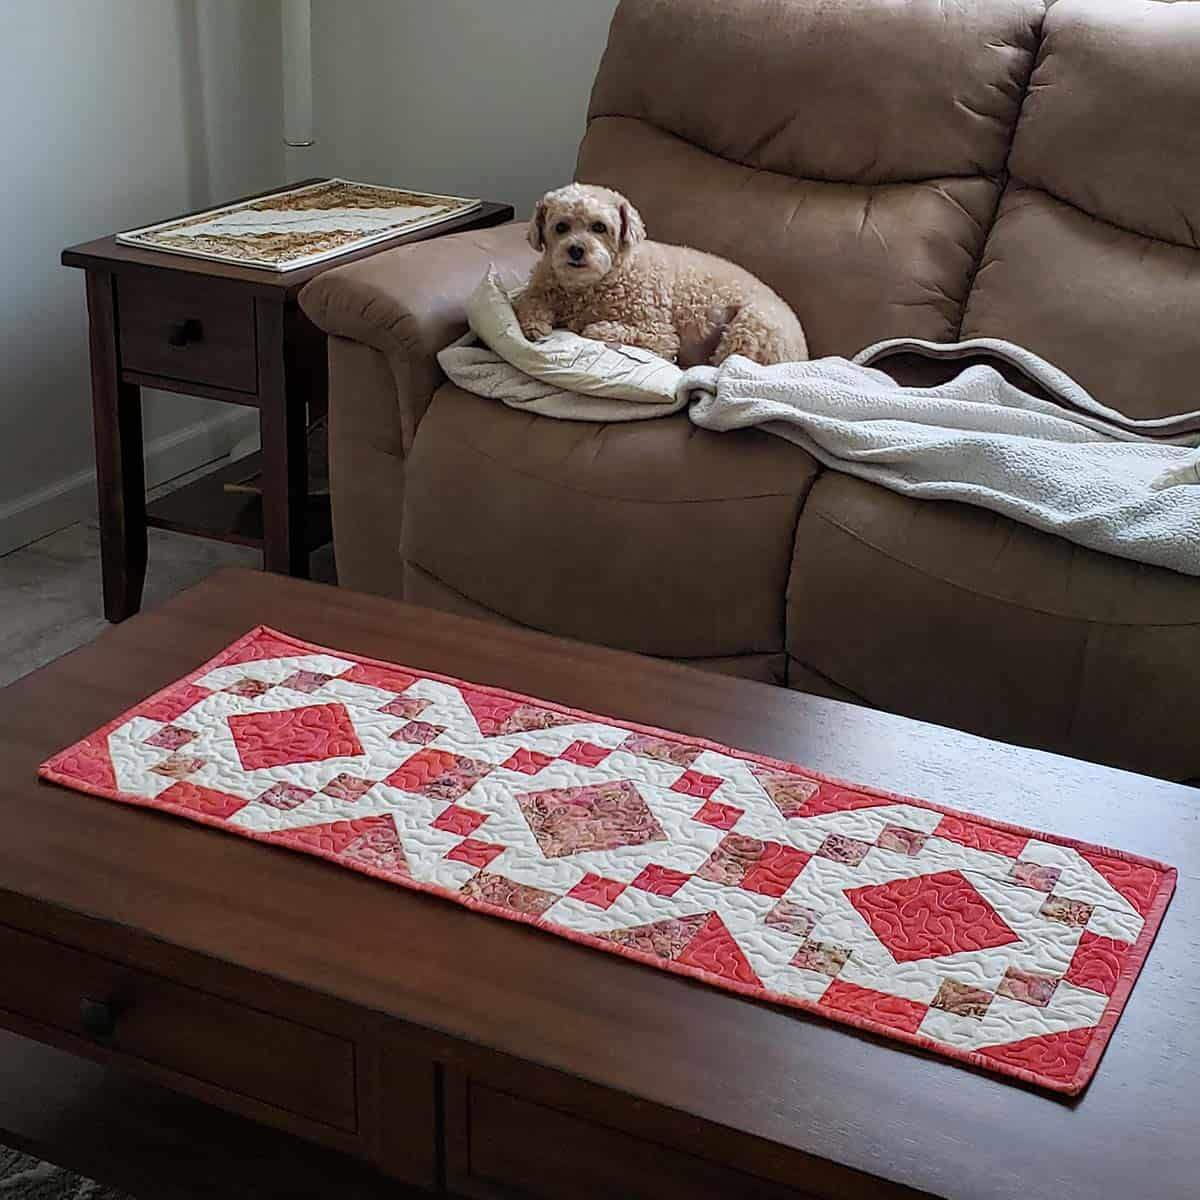 Mickey the poodle on the couch by the table runner